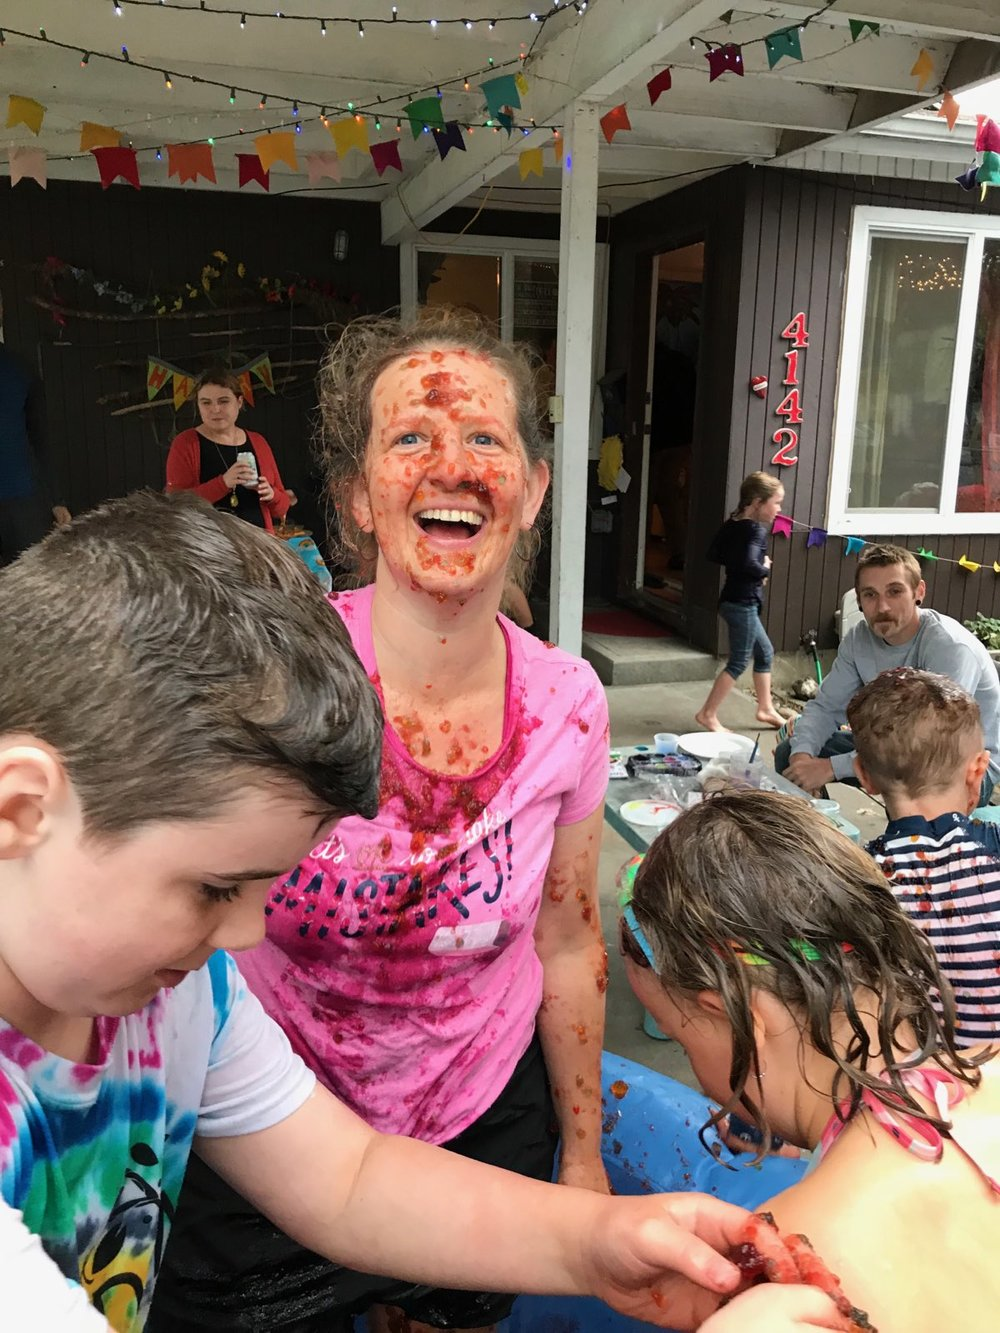 Me, being  not stressed  about being covered in Jell-o at my son's 7th birthday party.  Yep, he still likes getting messy, I've just joined him.